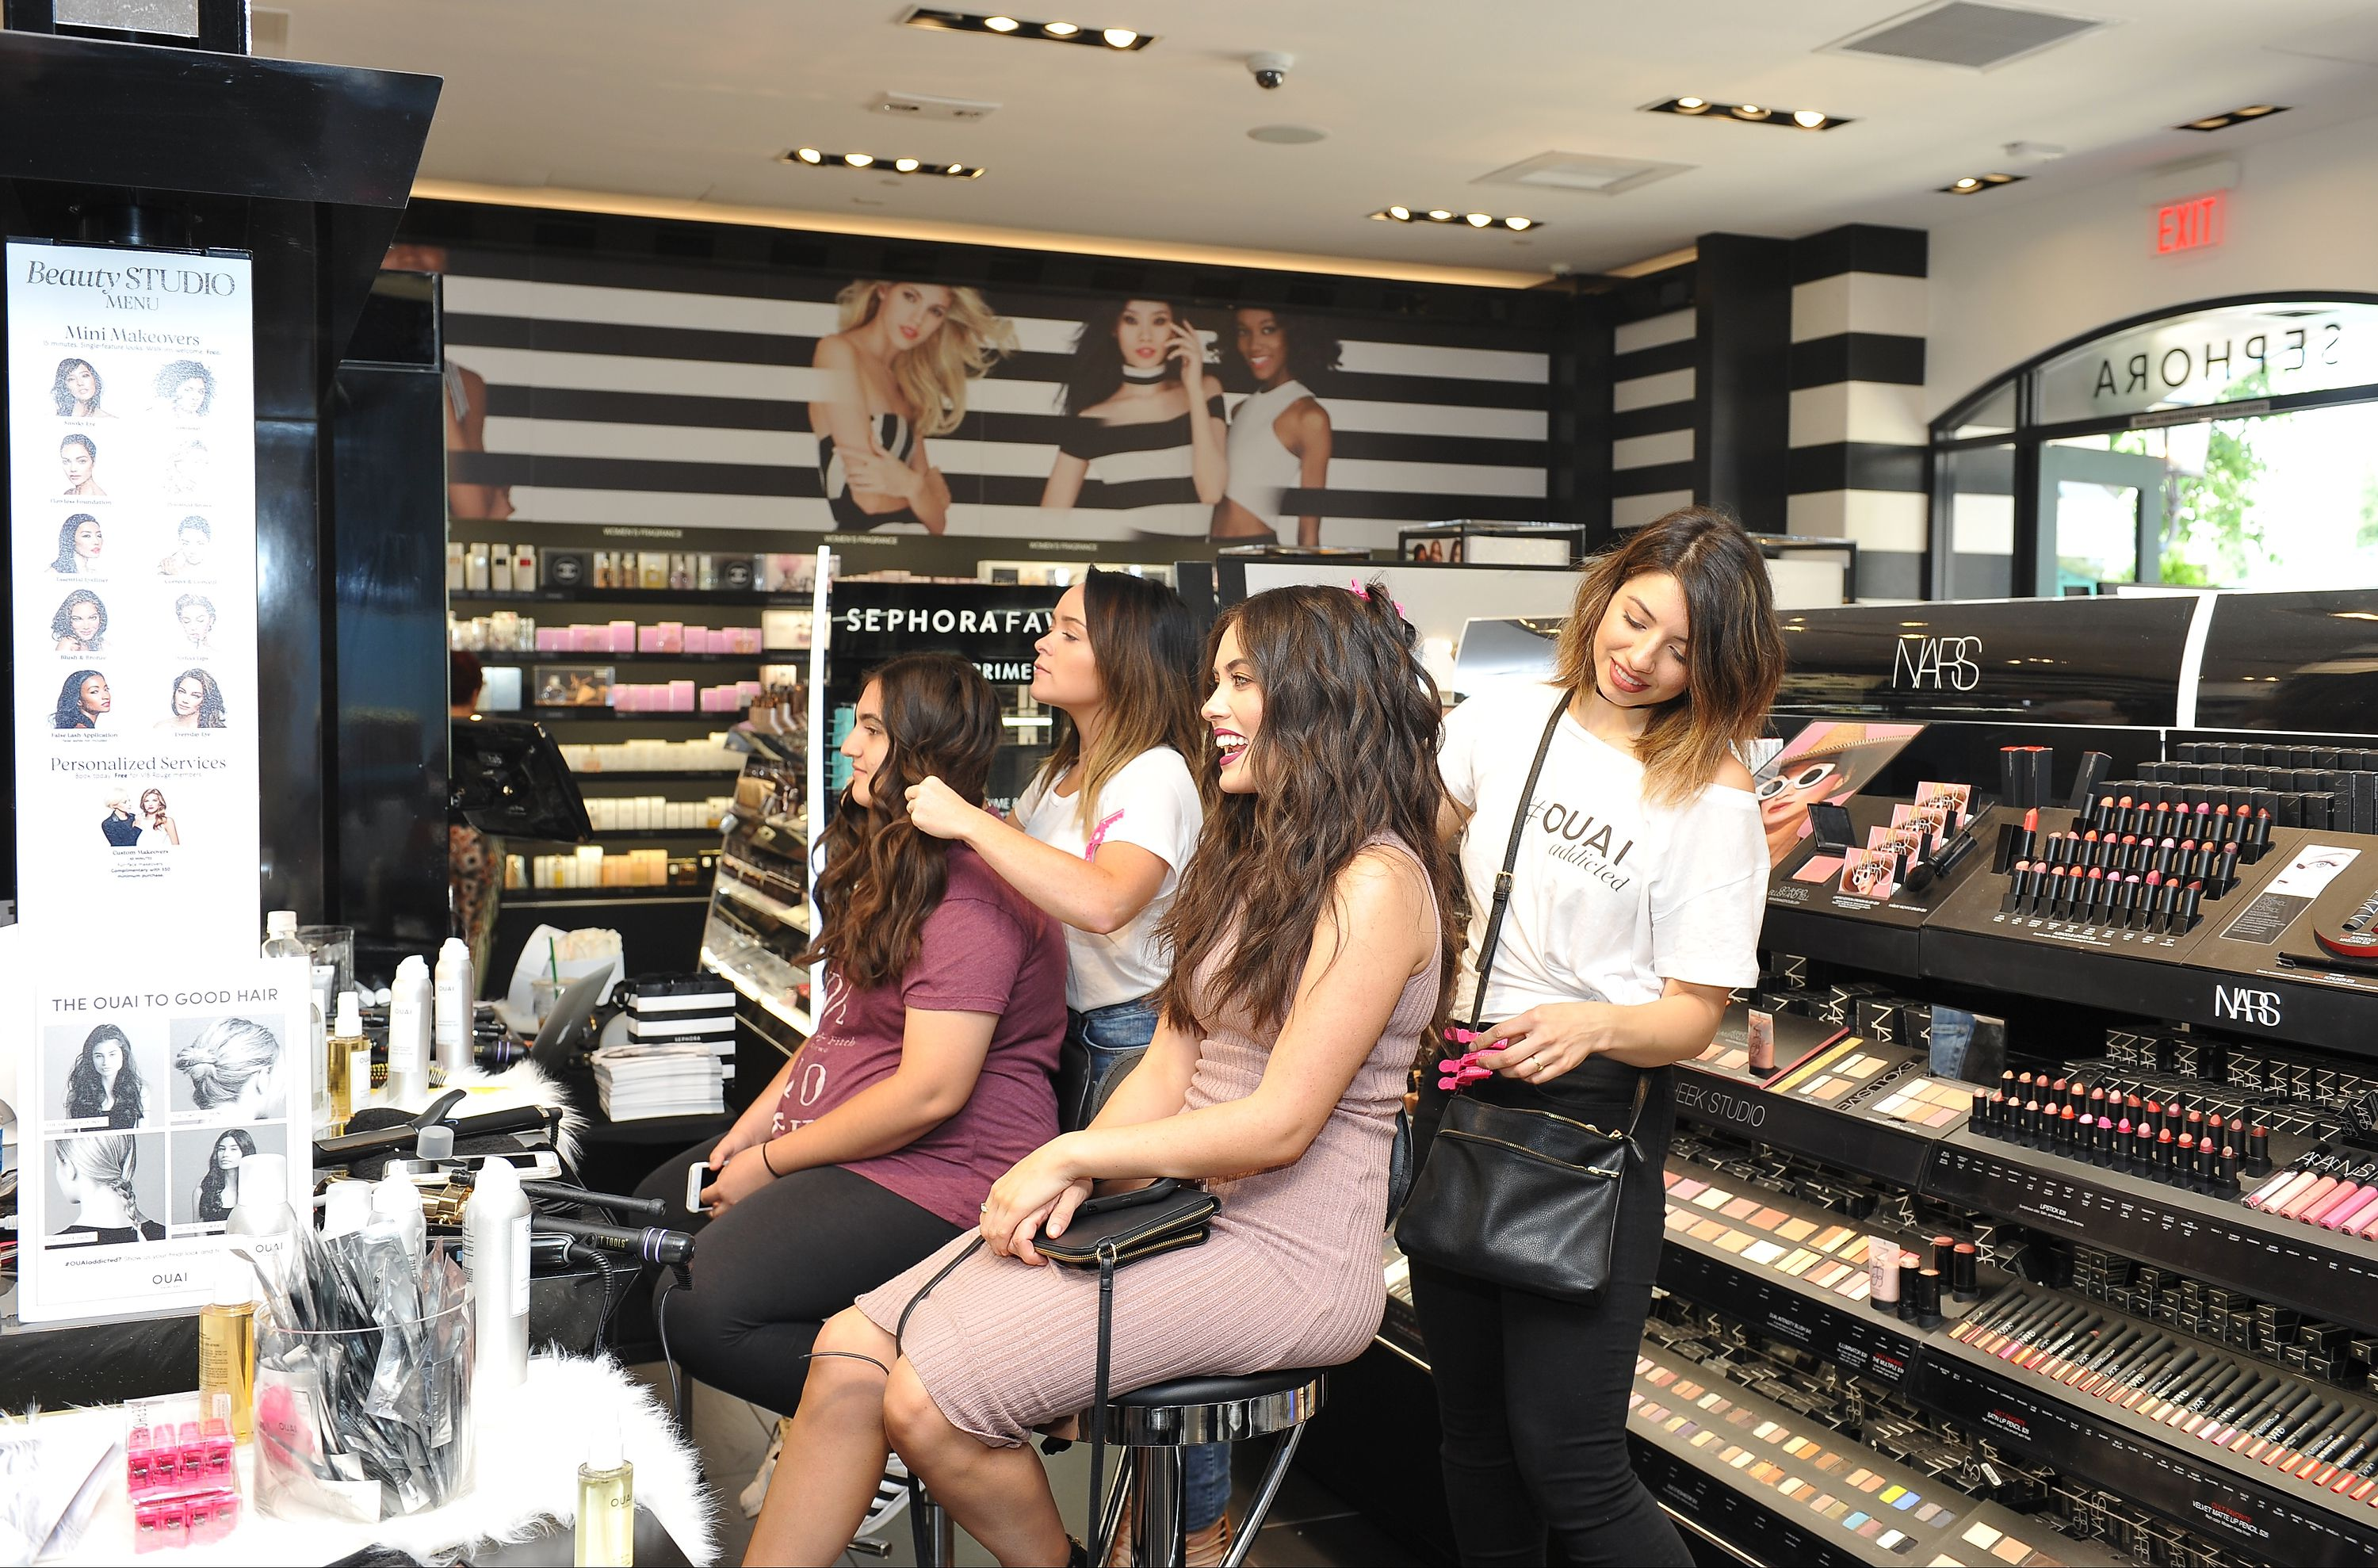 How To Get Sephora Free Samples Makeovers And Gifts